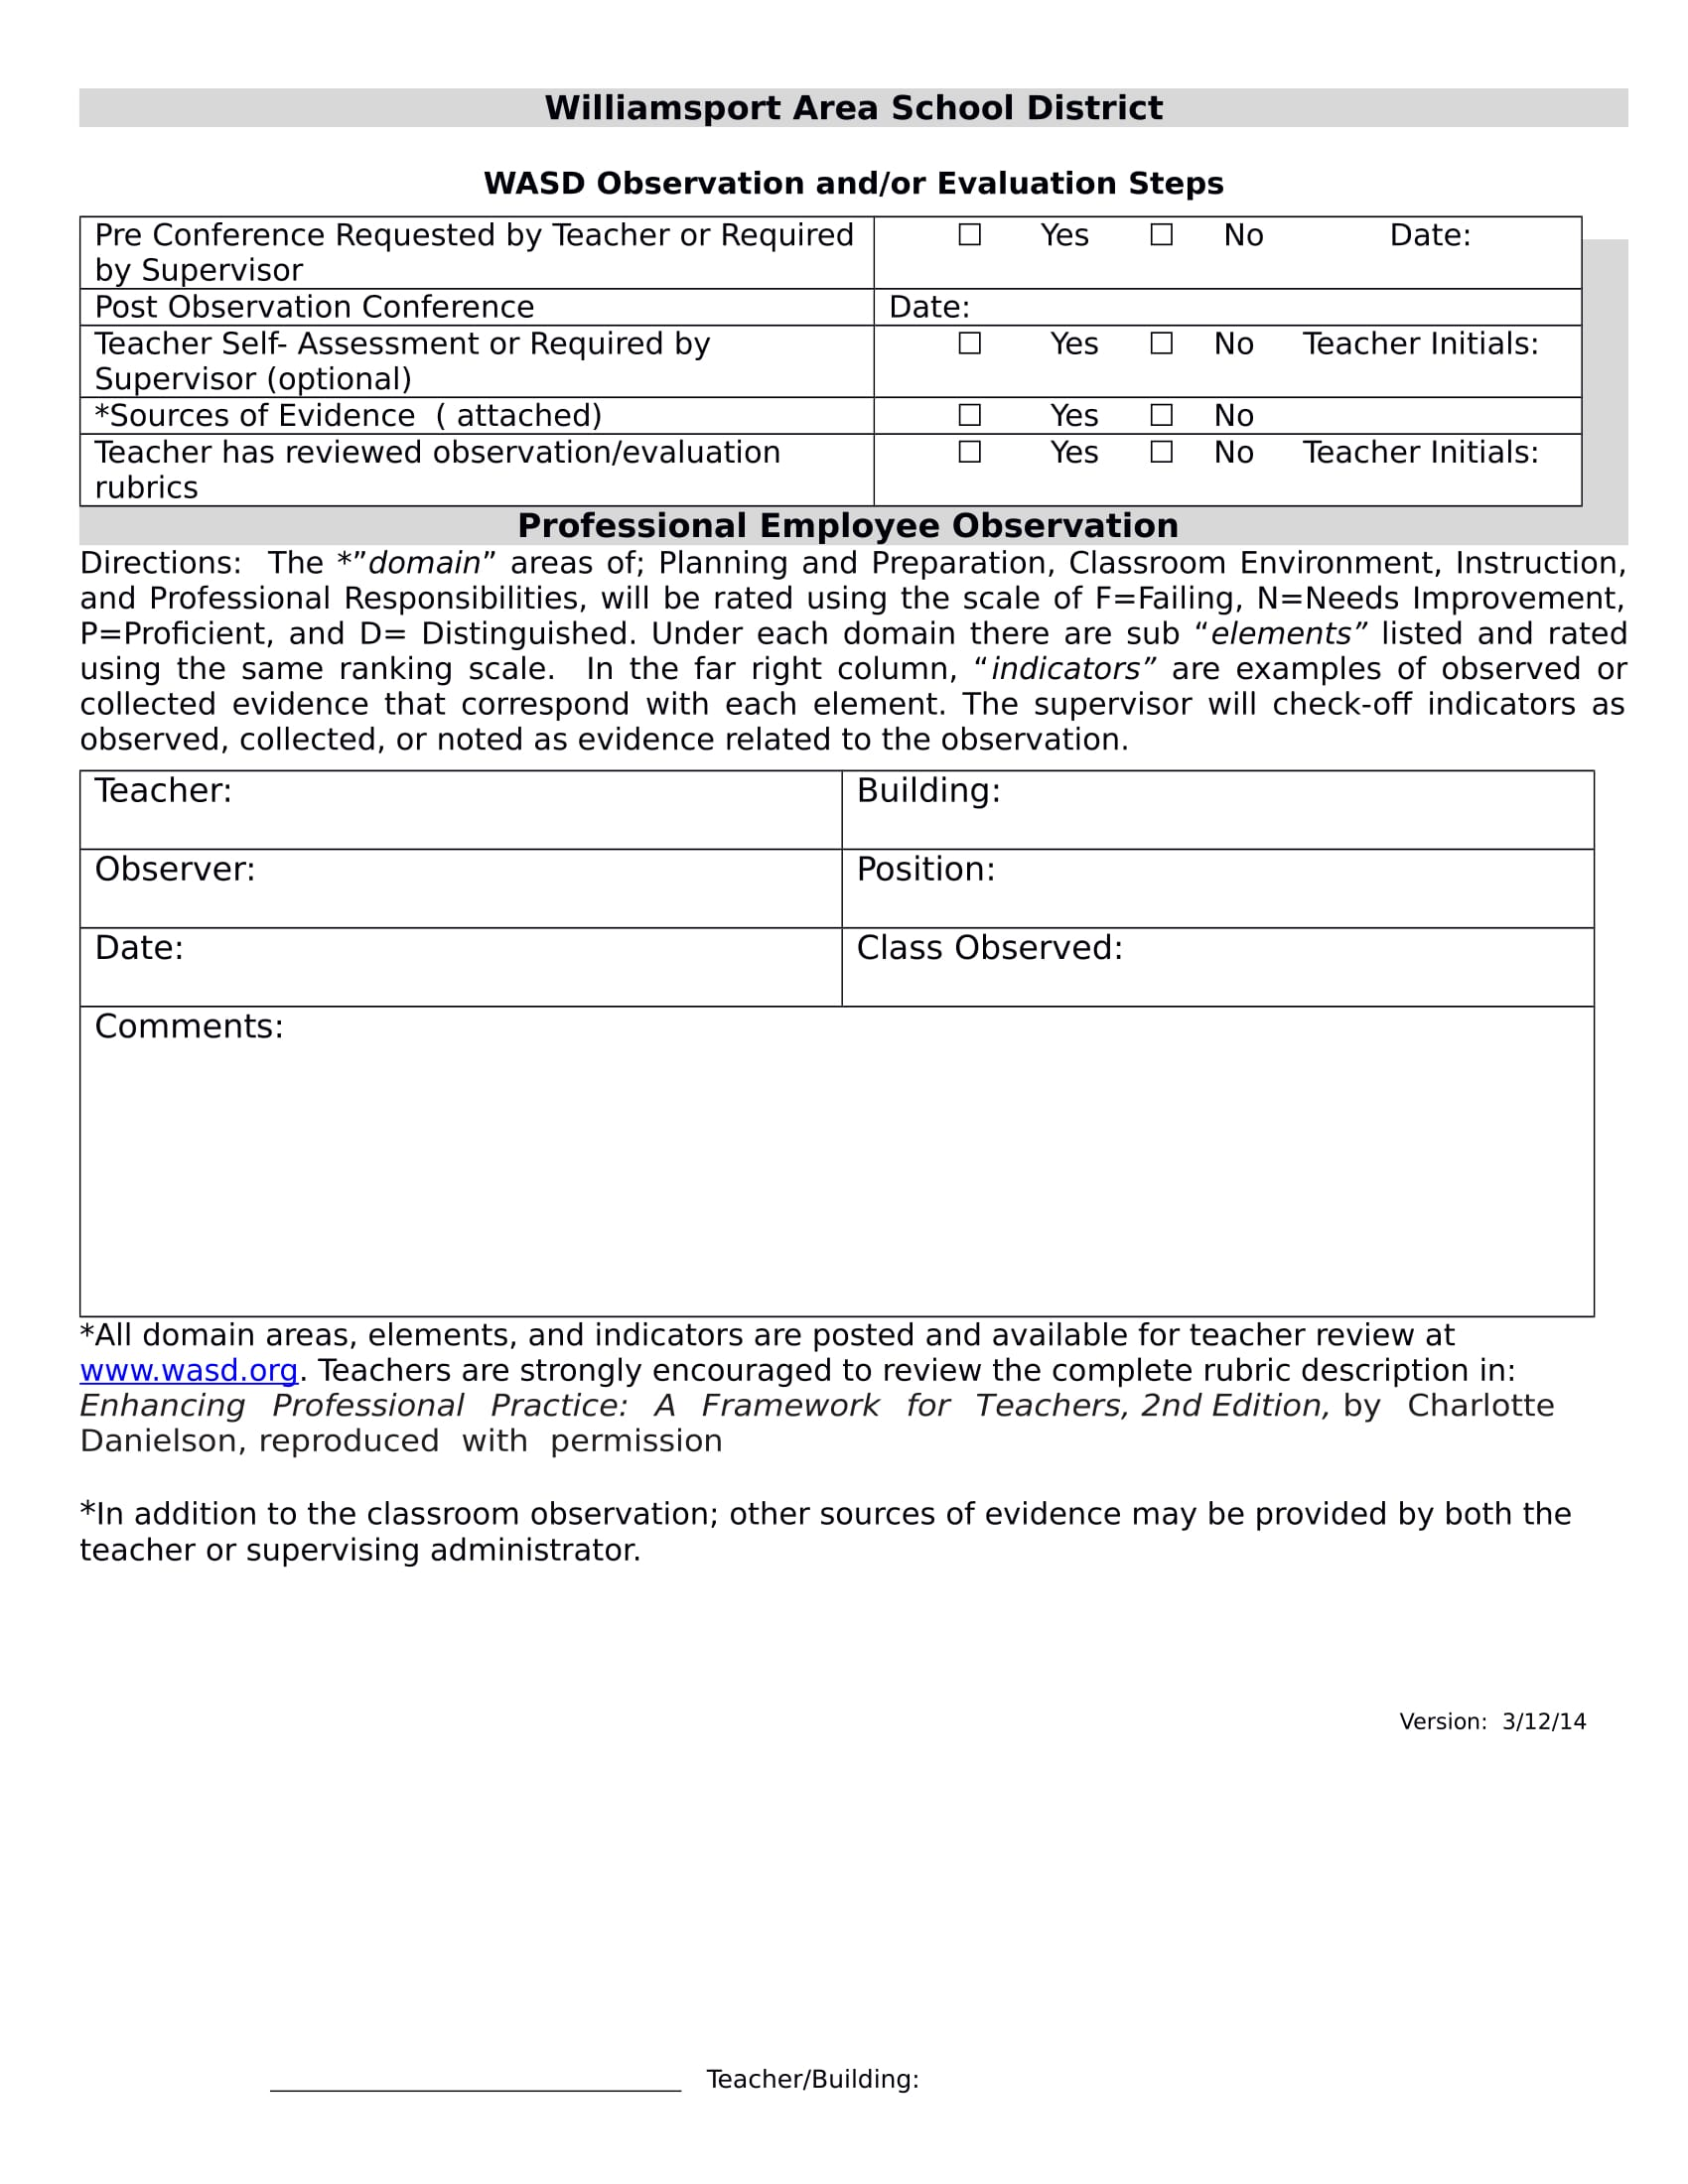 professional employee observation form in doc 1